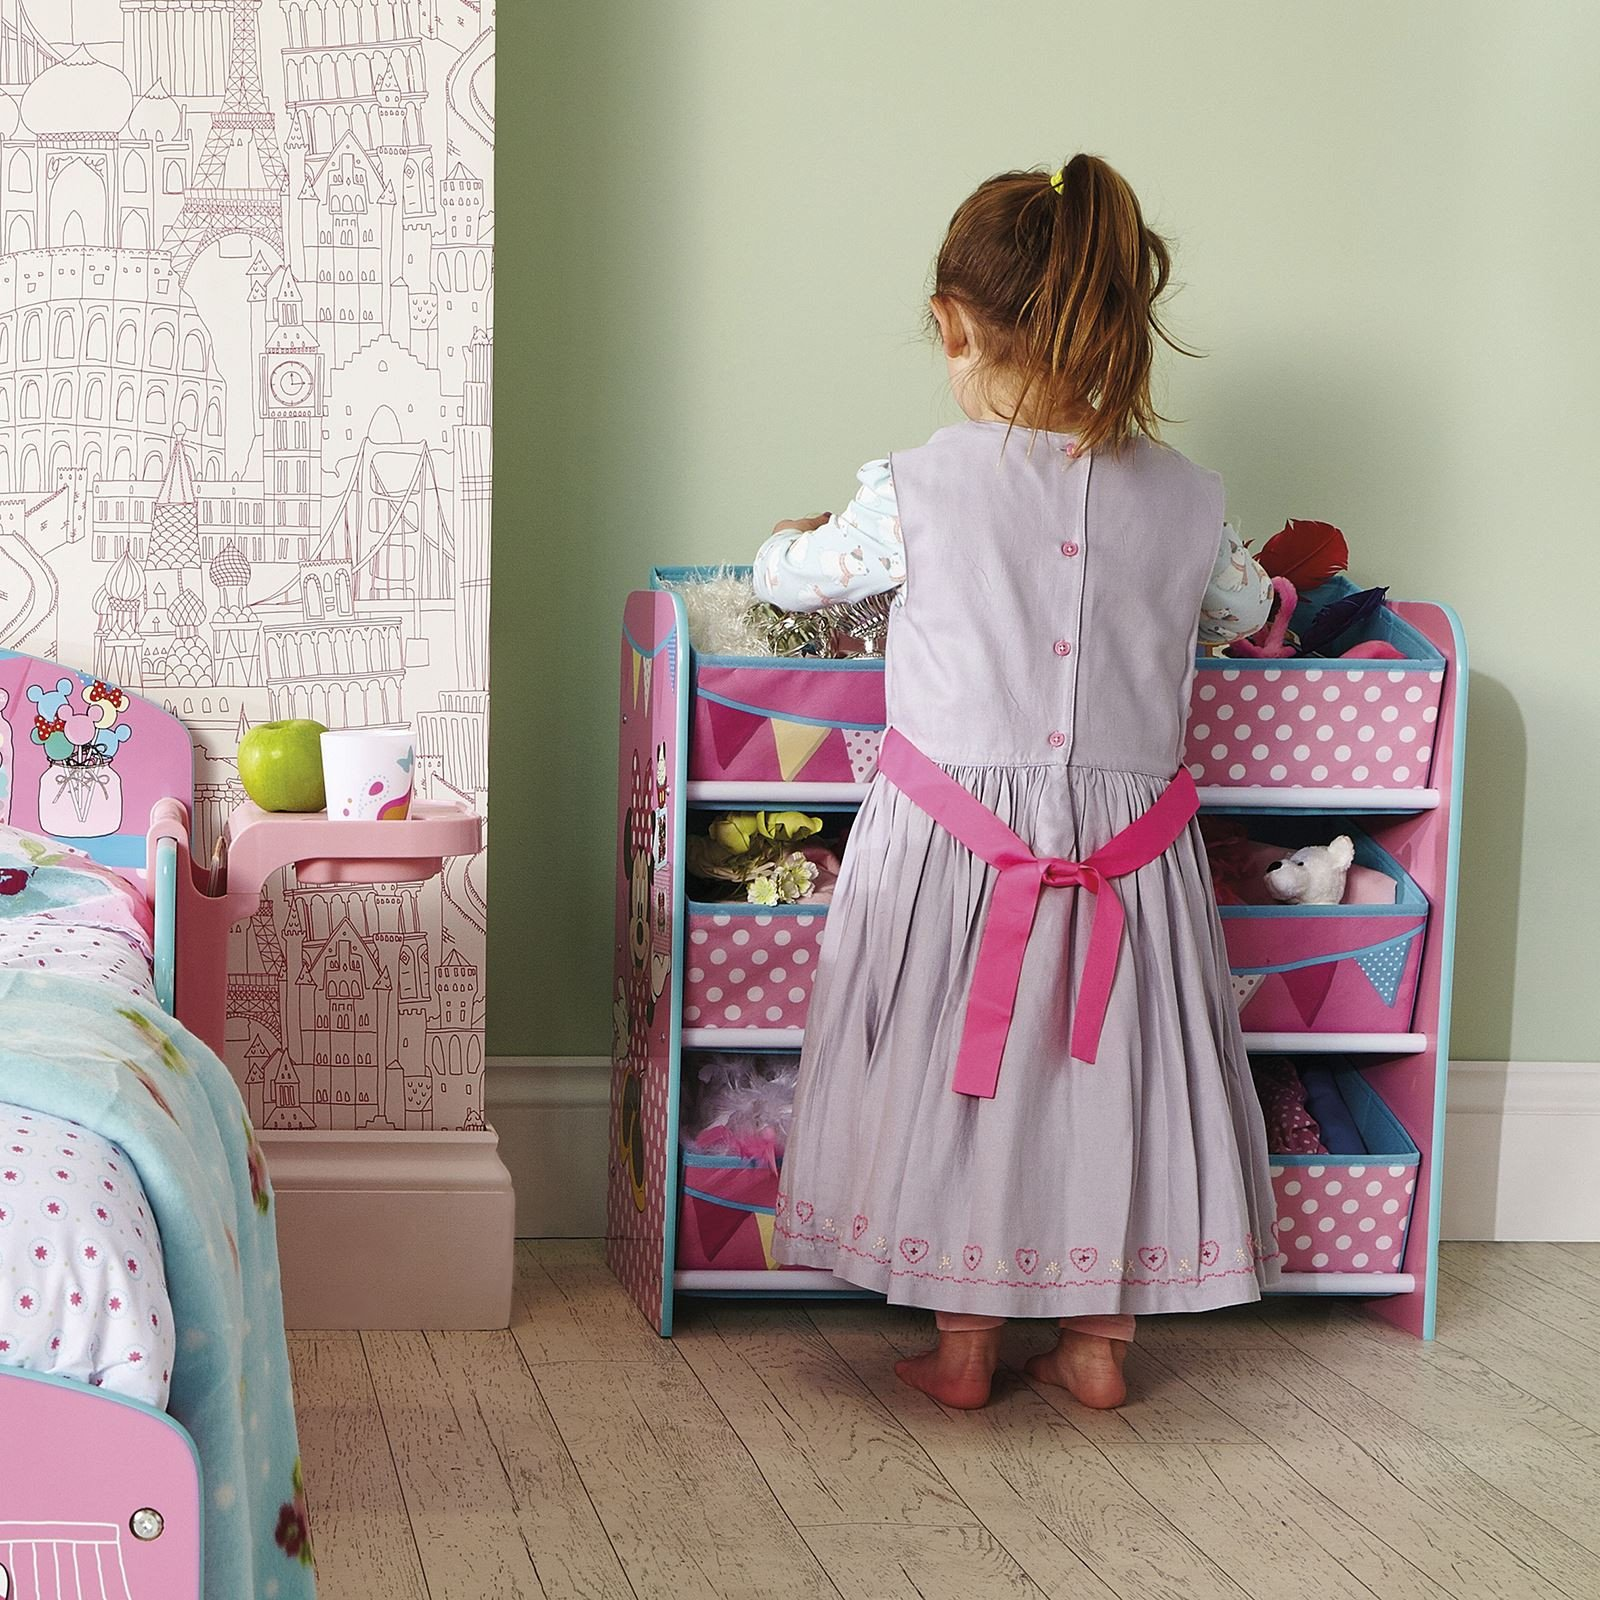 Minnie Mouse Bedroom Furniture Best Of Details About Kids Character 6 Bin Storage Unit Bedroom Furniture Disney Peppa Pj Masks